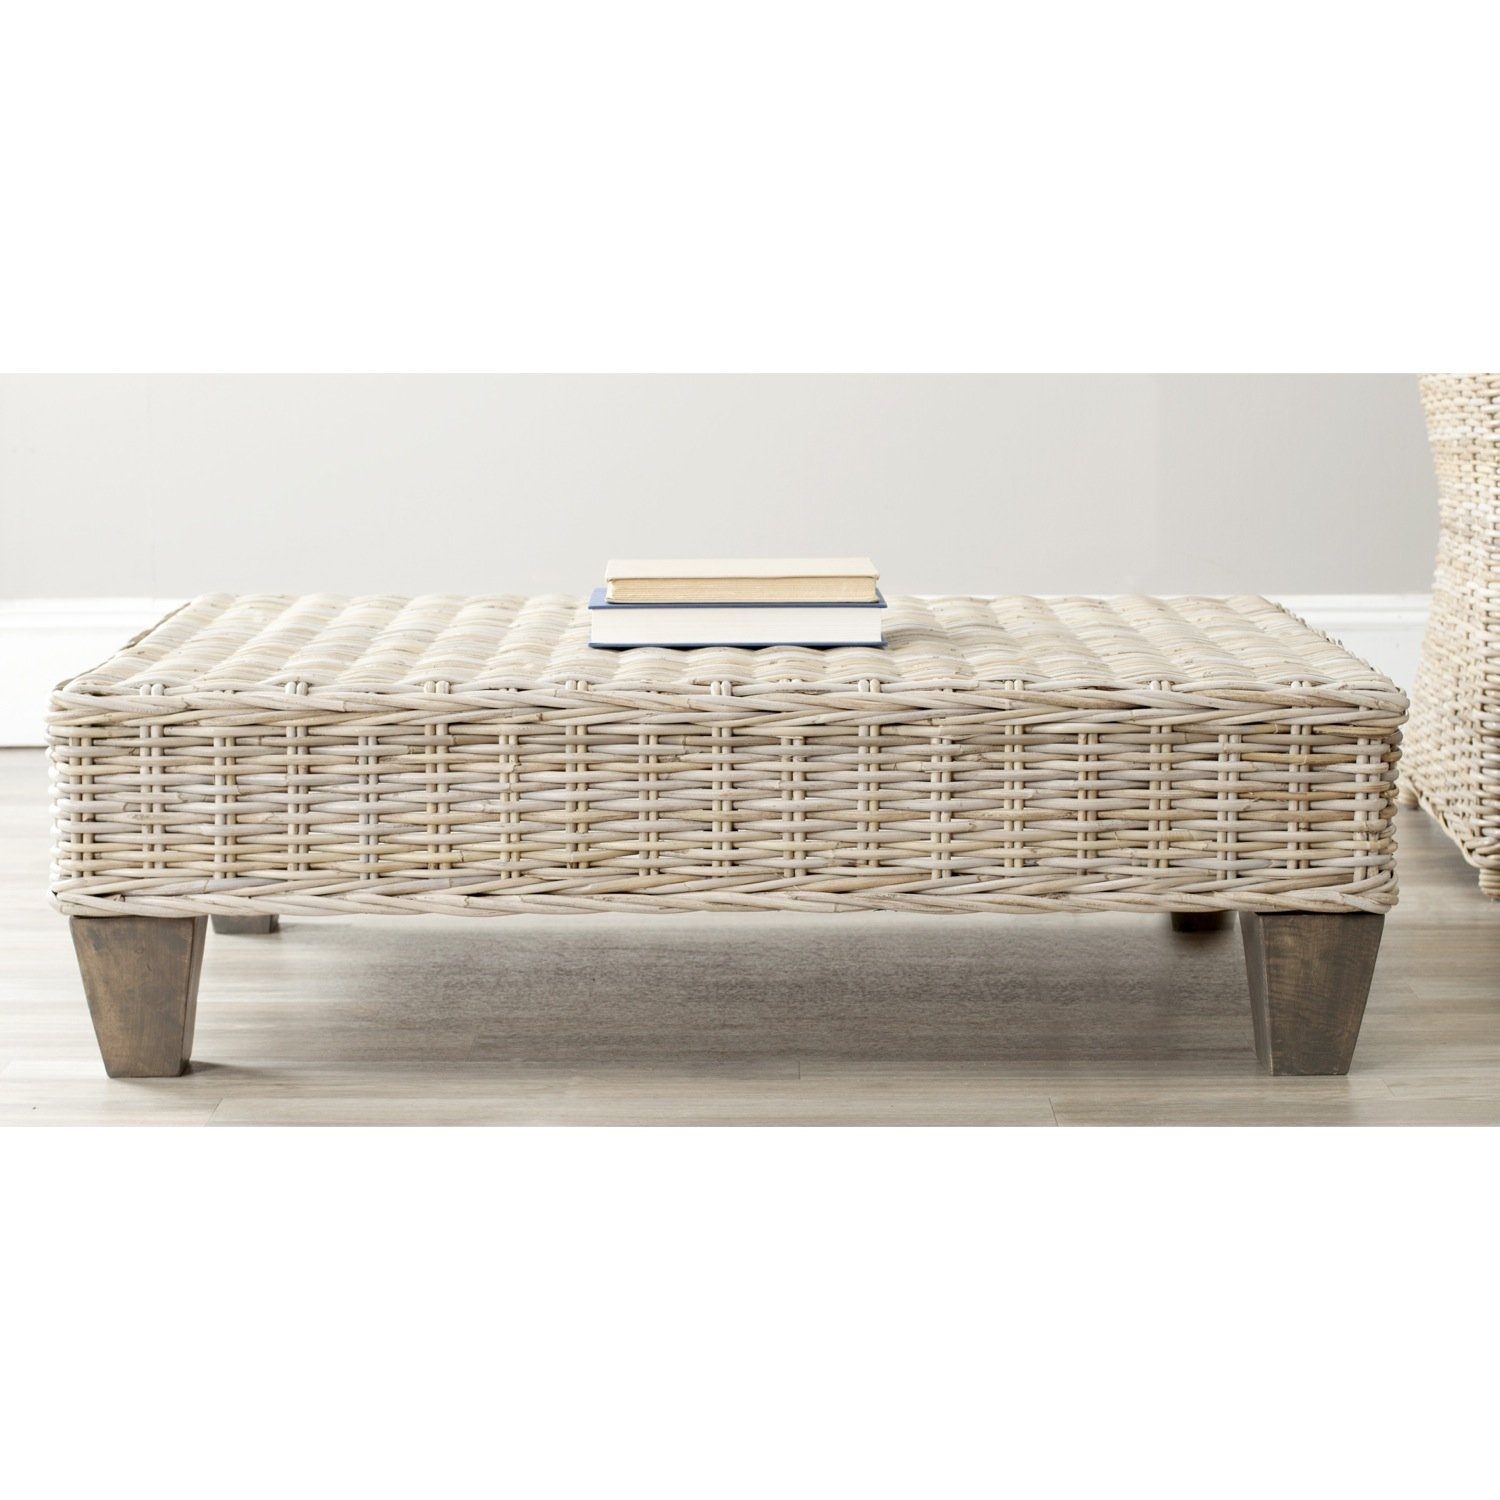 Wicker Rattan Seagrass Bench Natural Woven Seating